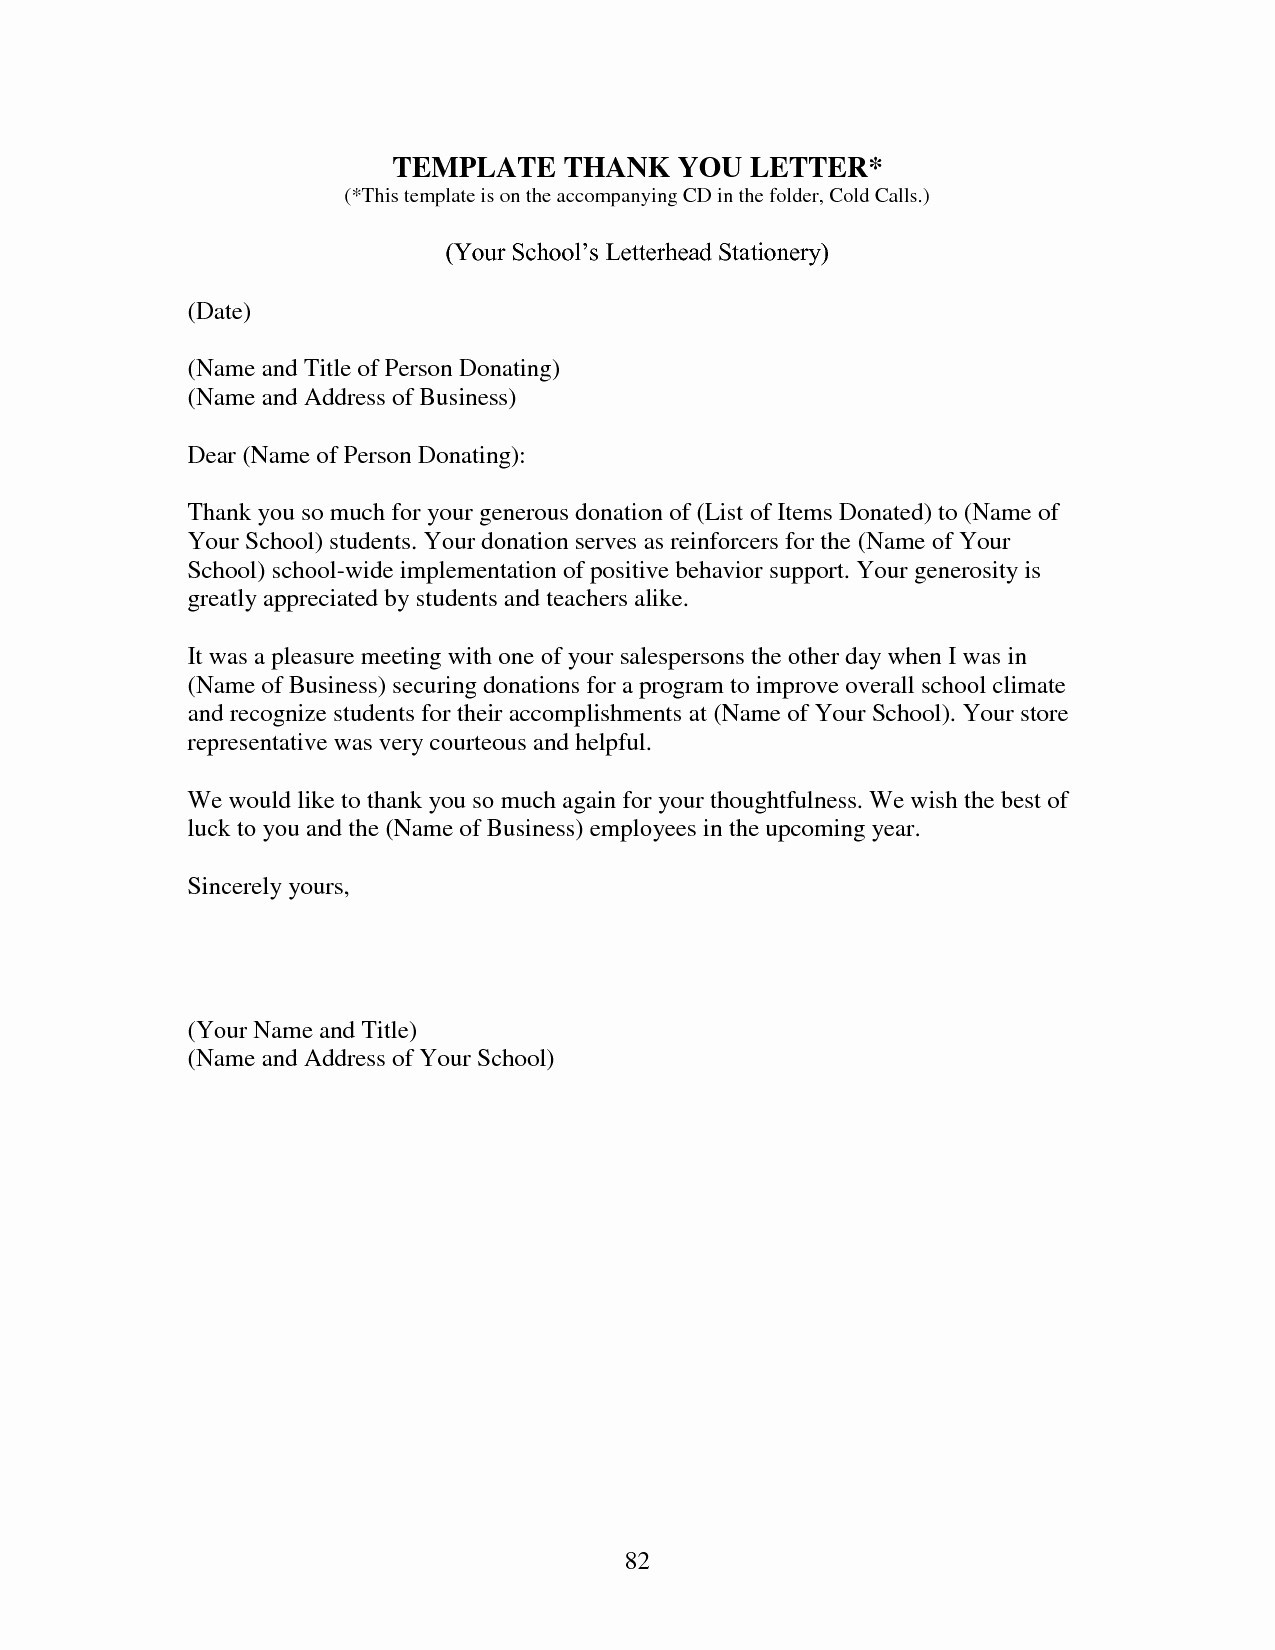 Company Business Reference Letter Template - Business Referral Letter Template Inspirationa Best Cover Letter and